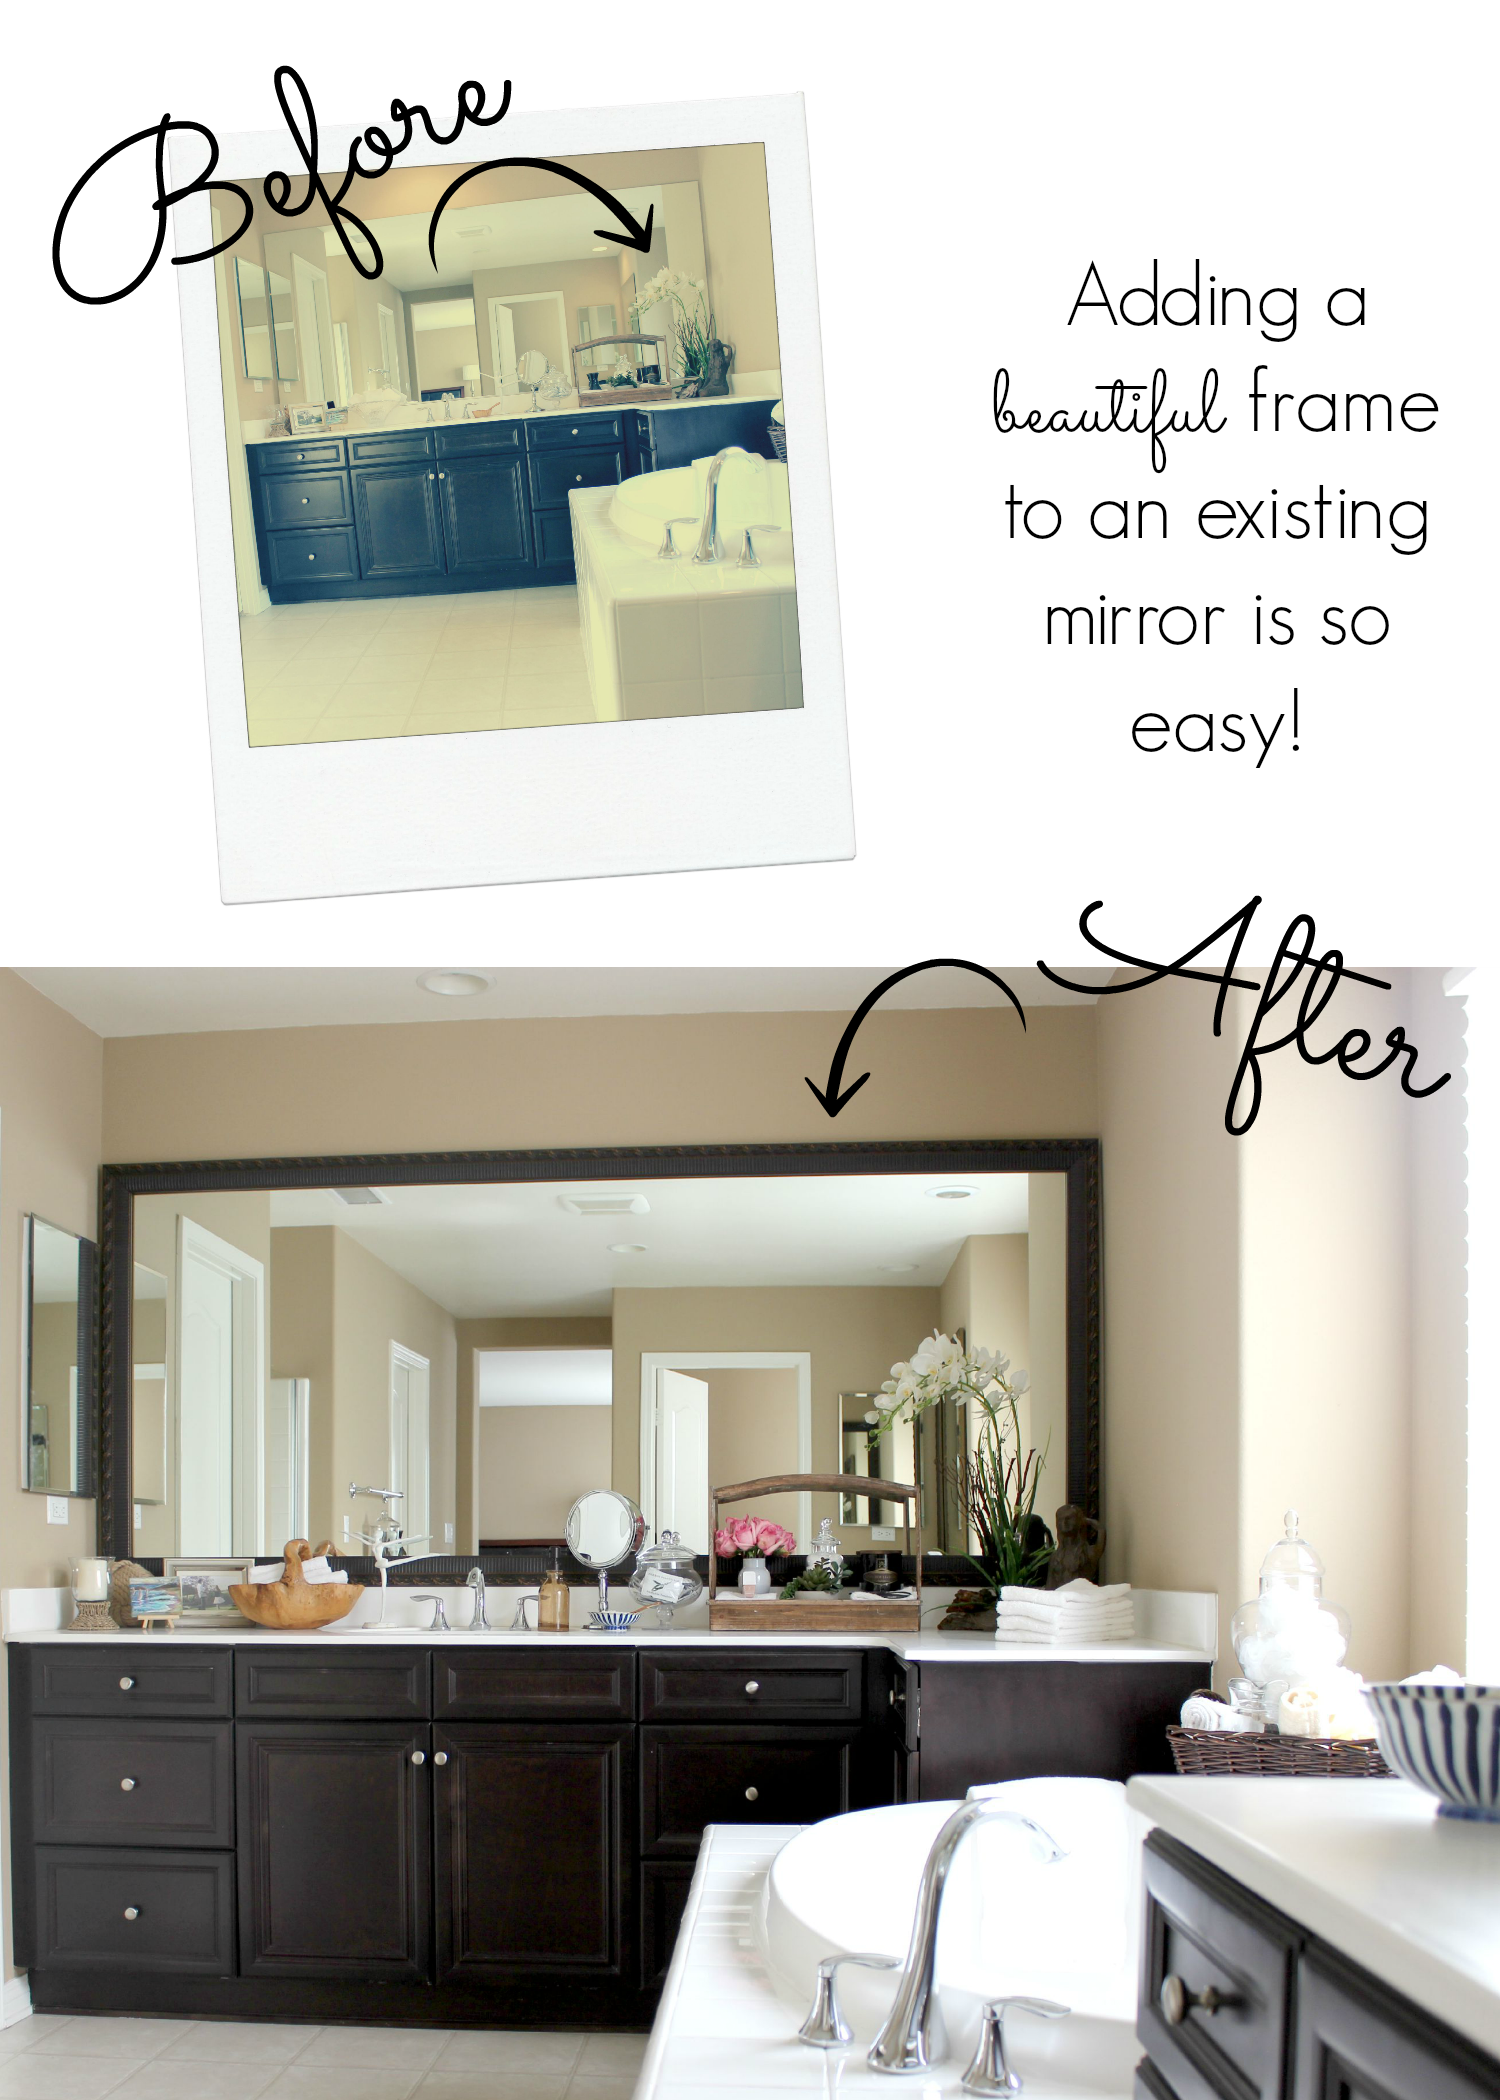 Adding a frame to existing mirrors is an easy and inexpensive